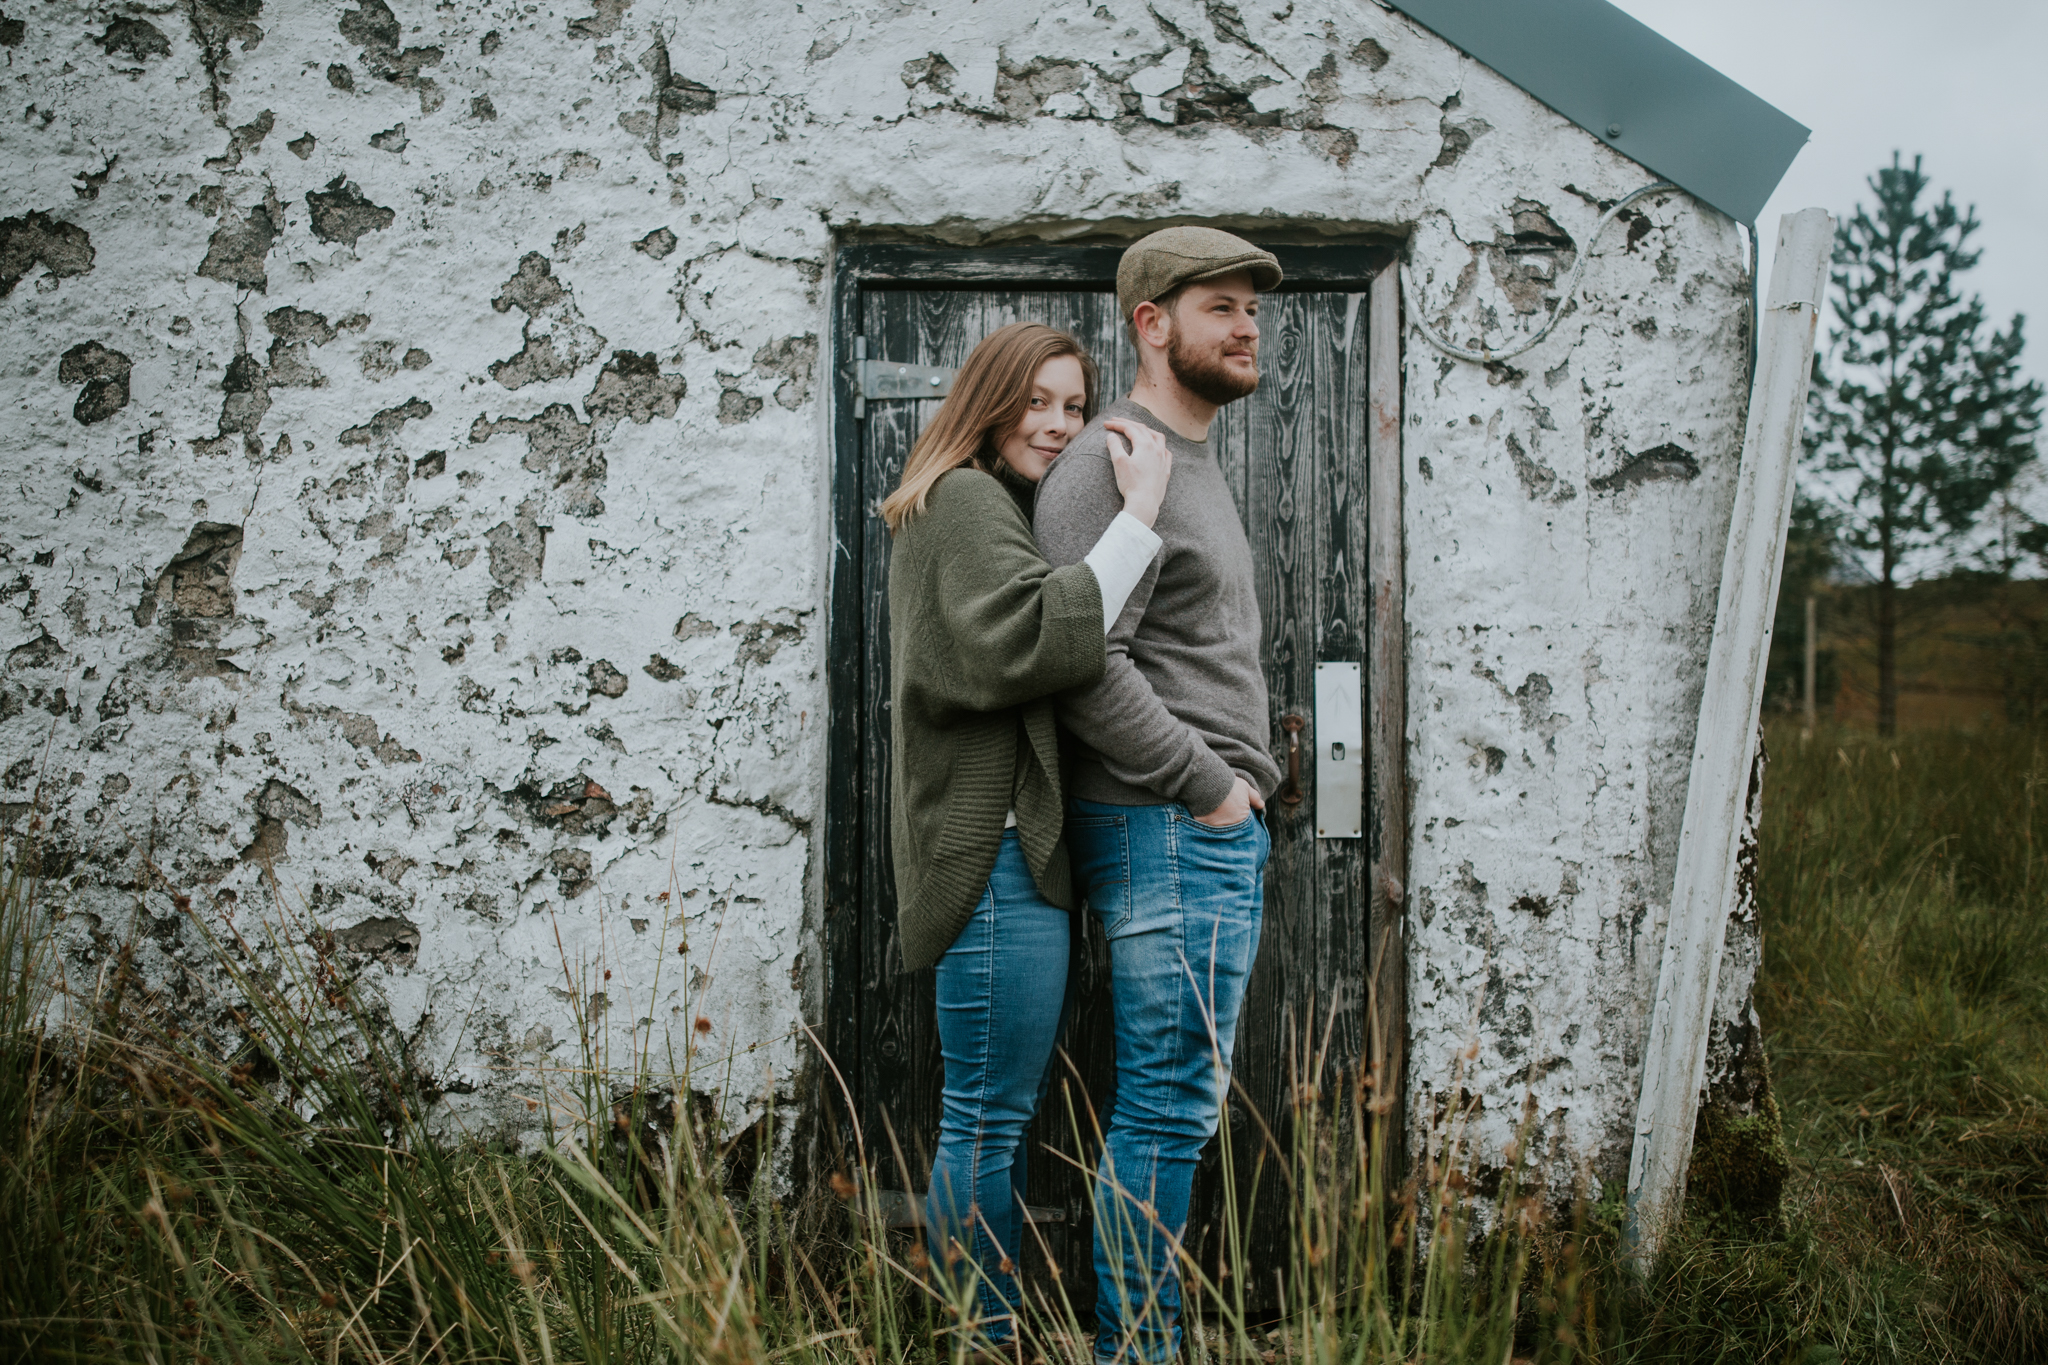 Cinematic style wedding and elopement photography in Scotland